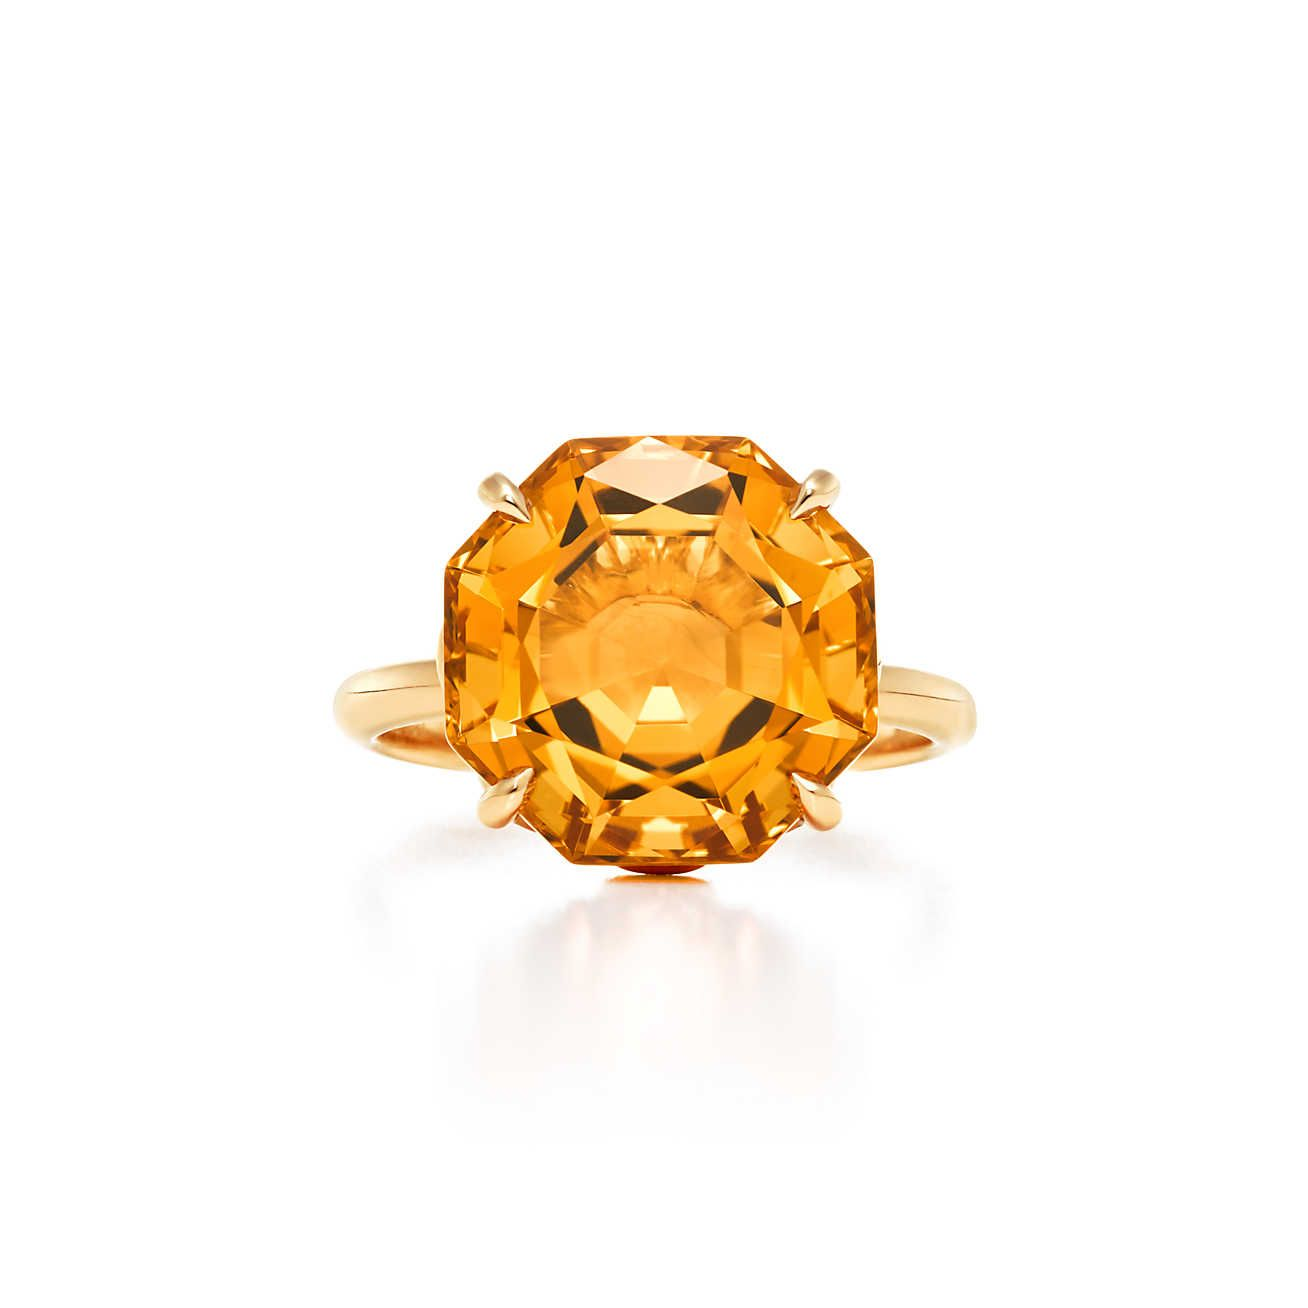 5f37a26be Tiffany Sparklers:Octagonal Citrine Ring. Tiffany Sparklers ring in 18k gold  ...